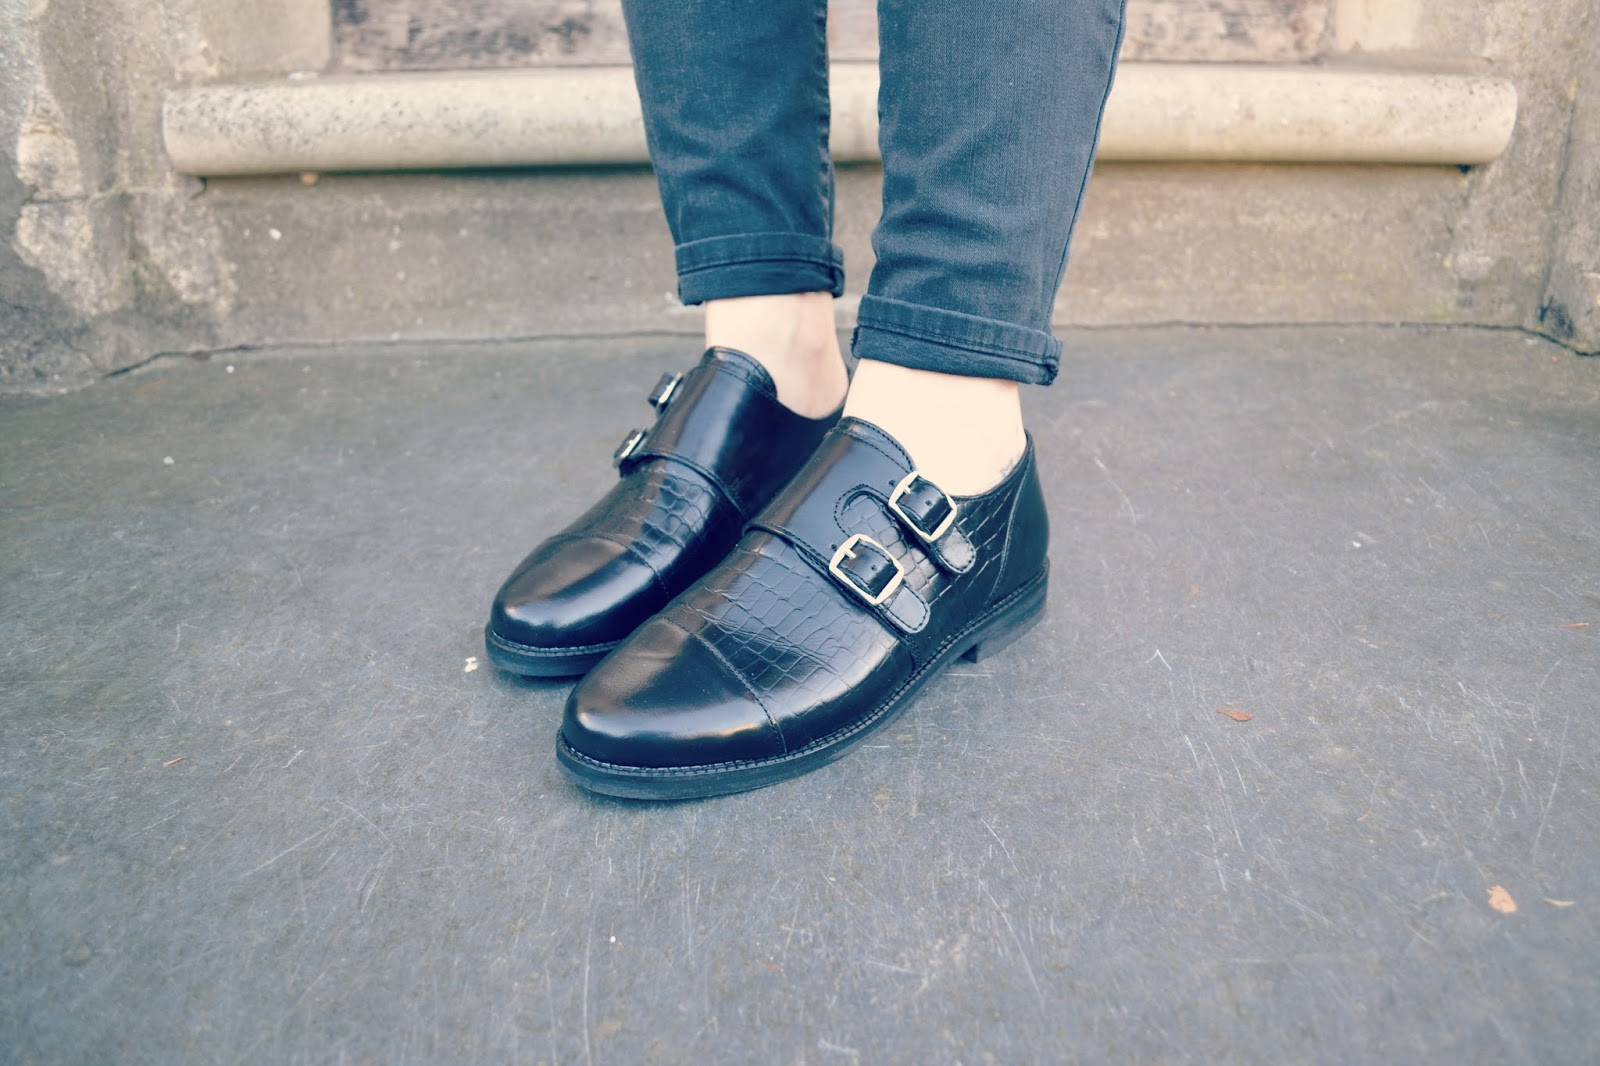 Topshop Konk Monk Shoes